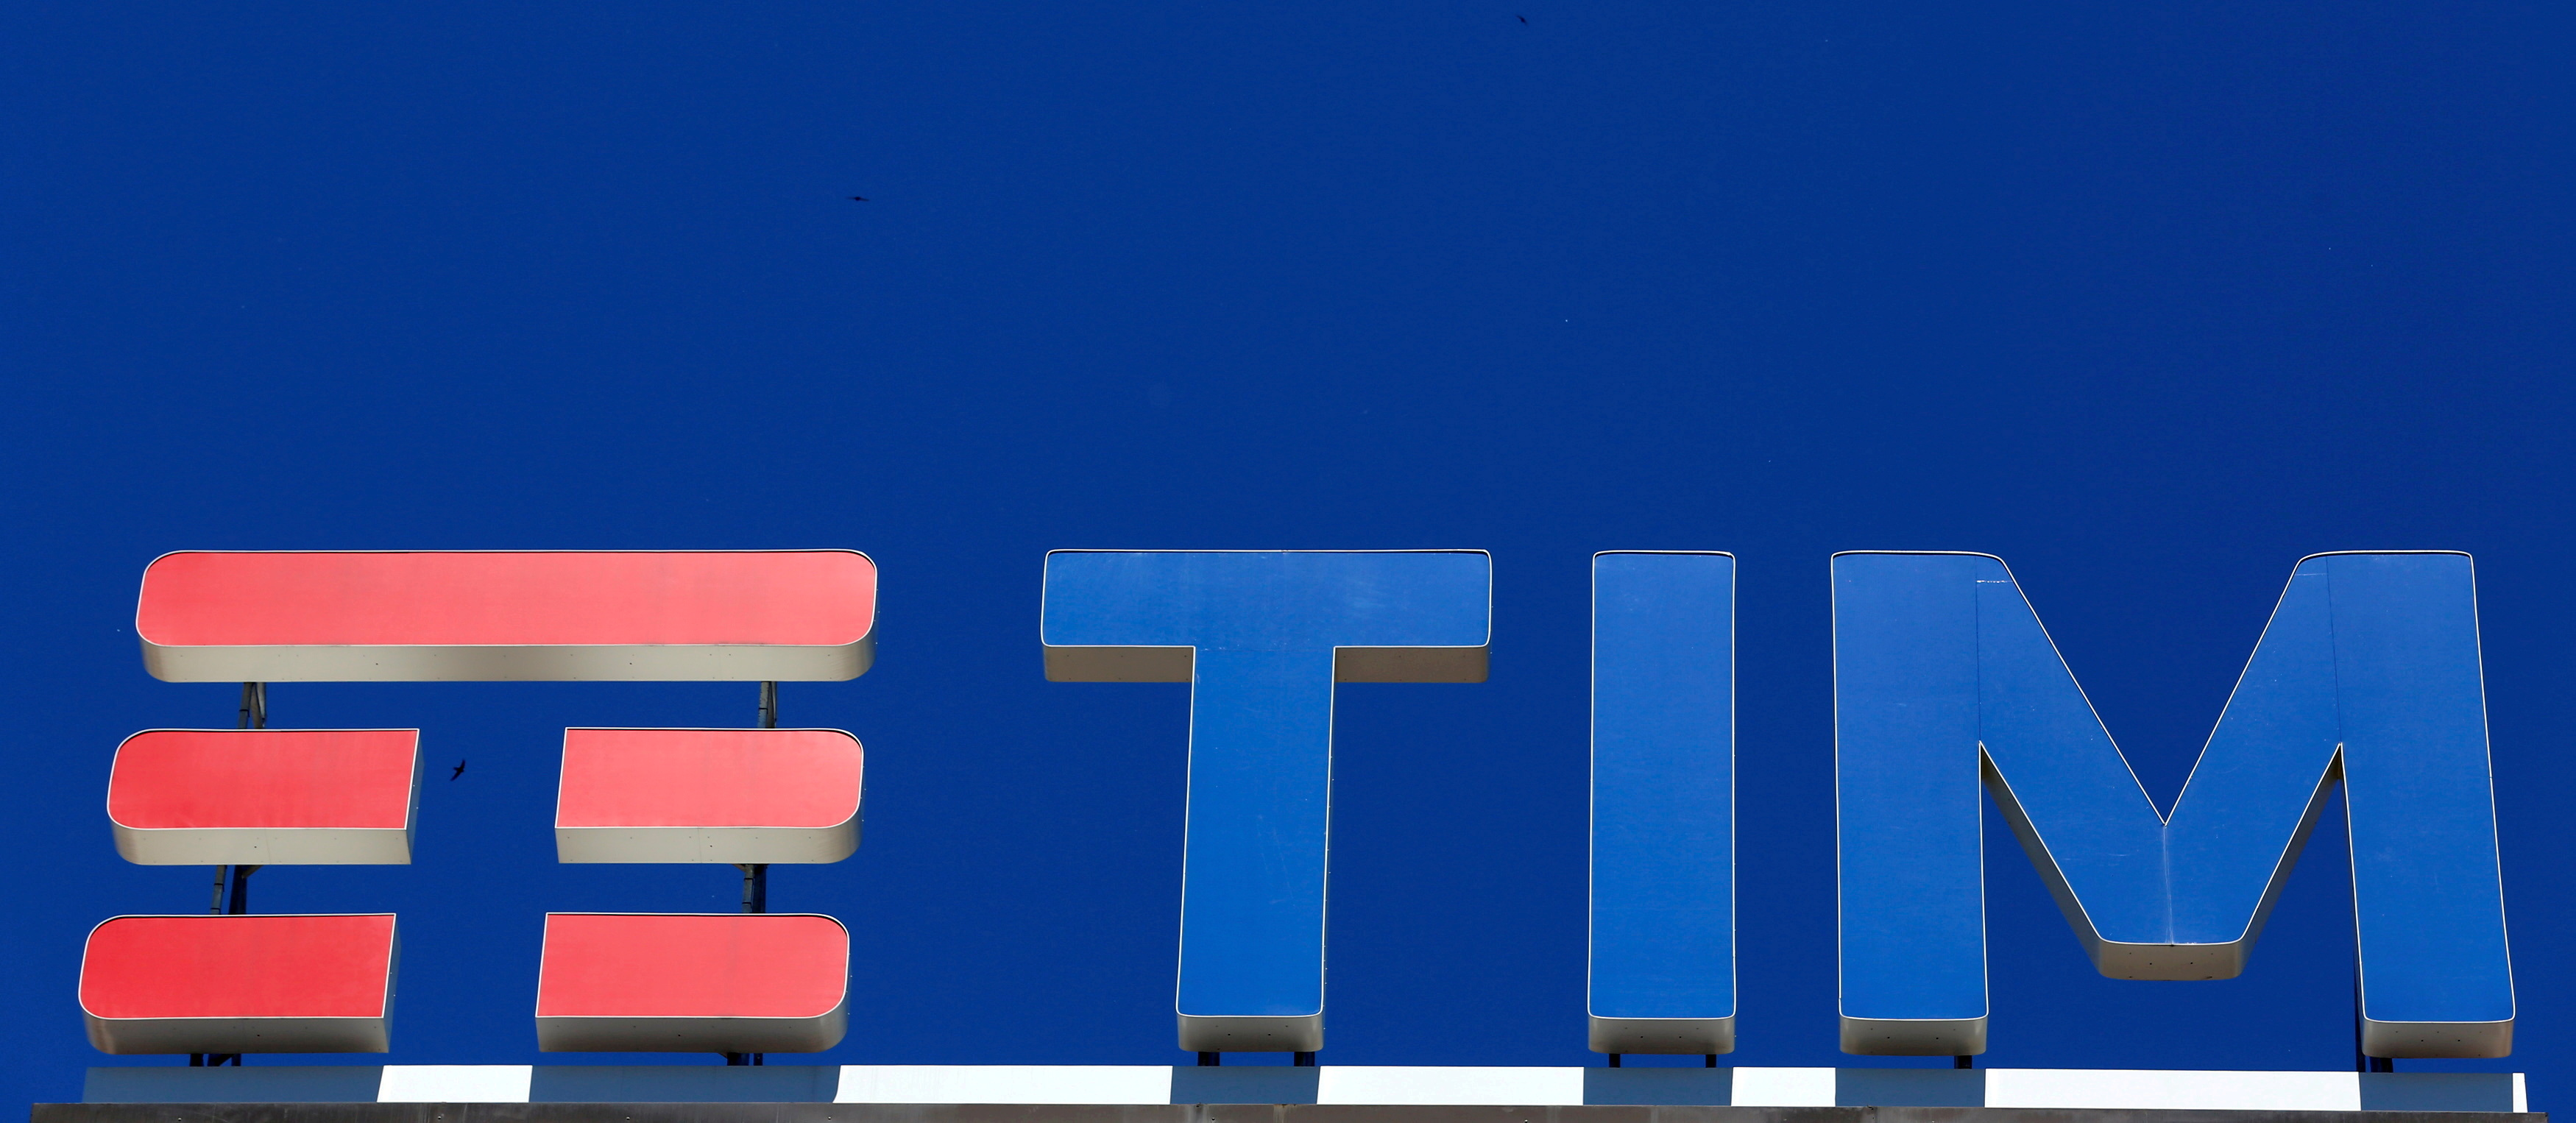 Telecom Italia's logo for the TIM brand is seen on building roof downtown Milan, Italy, May 20, 2016. REUTERS/Stefano Rellandini/File Photo